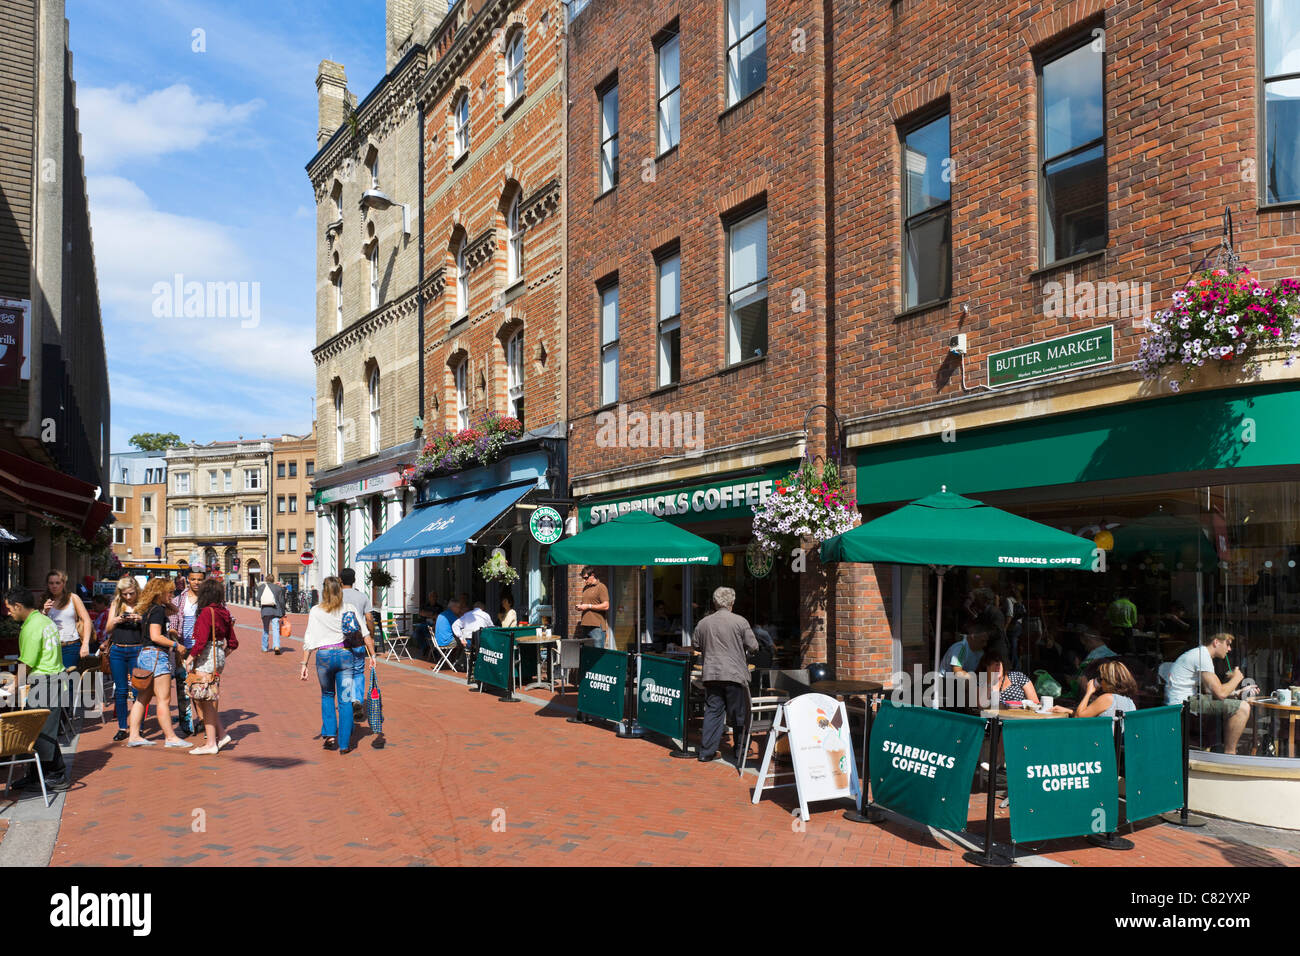 Starbucks coffee shop on Butter Market in the city centre, Reading, Berkshire, England, UK - Stock Image